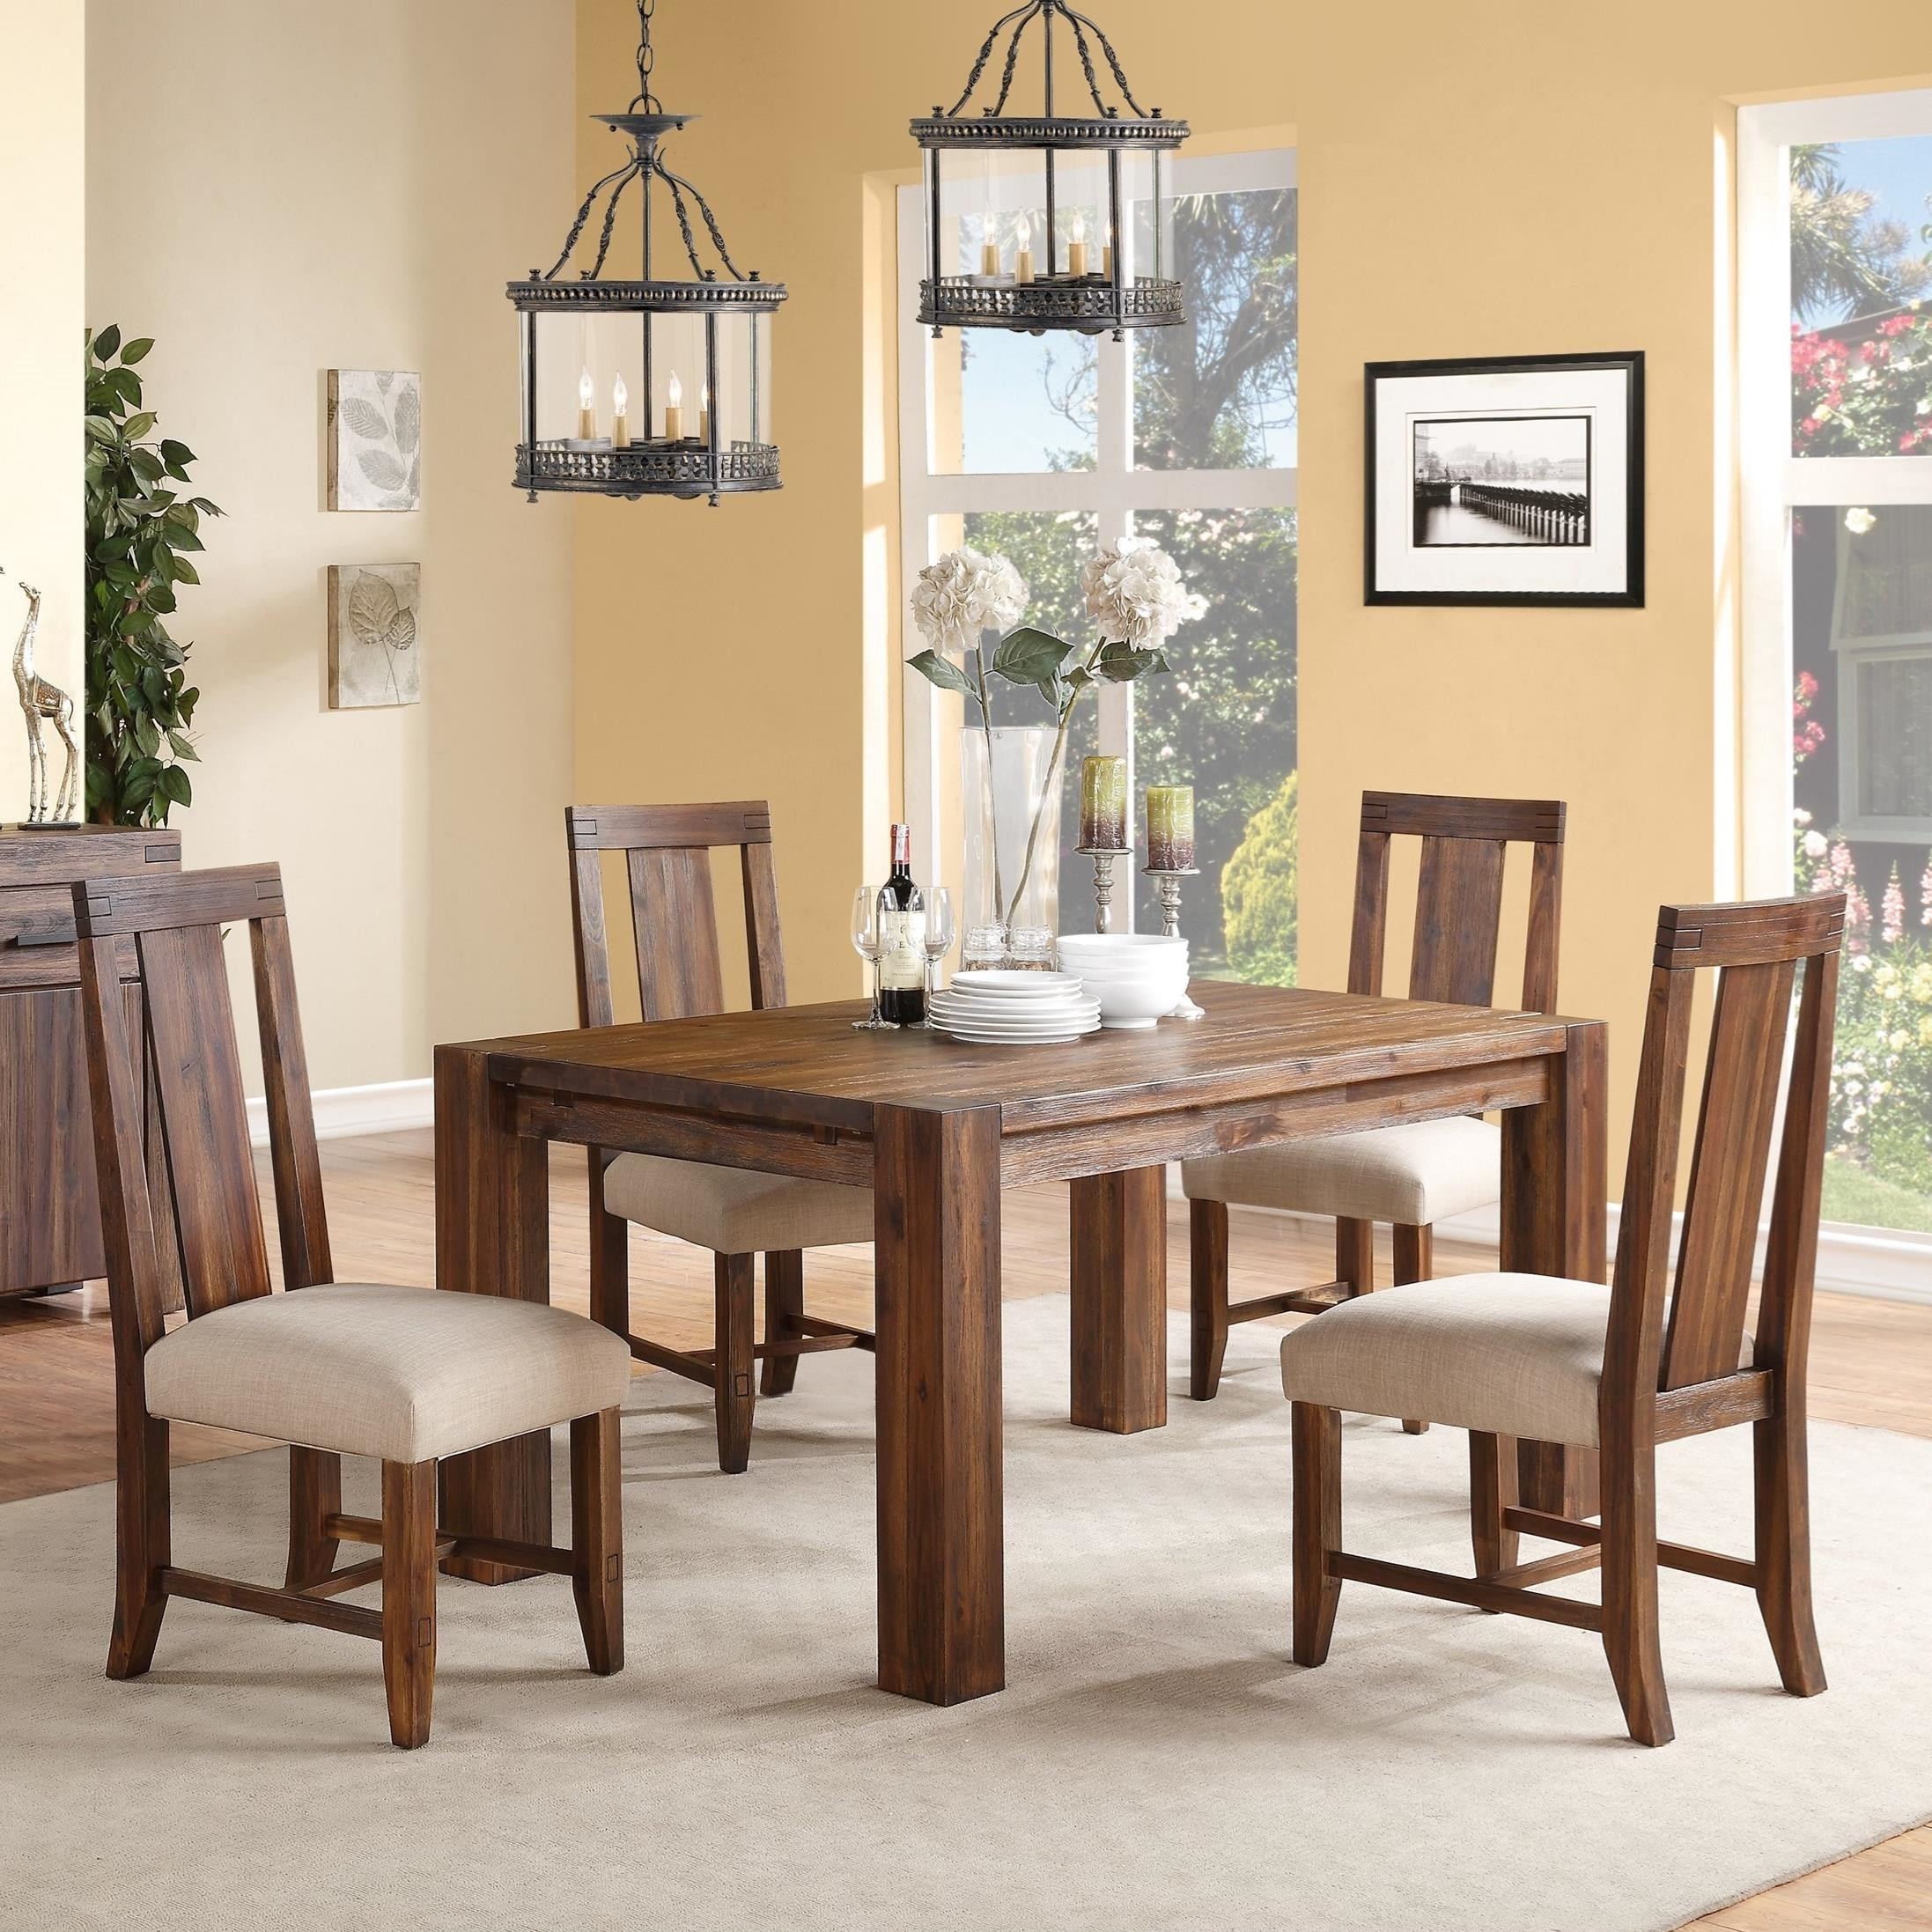 Meadow 5-Piece Table & Chair Set by Modus International at A1 Furniture & Mattress